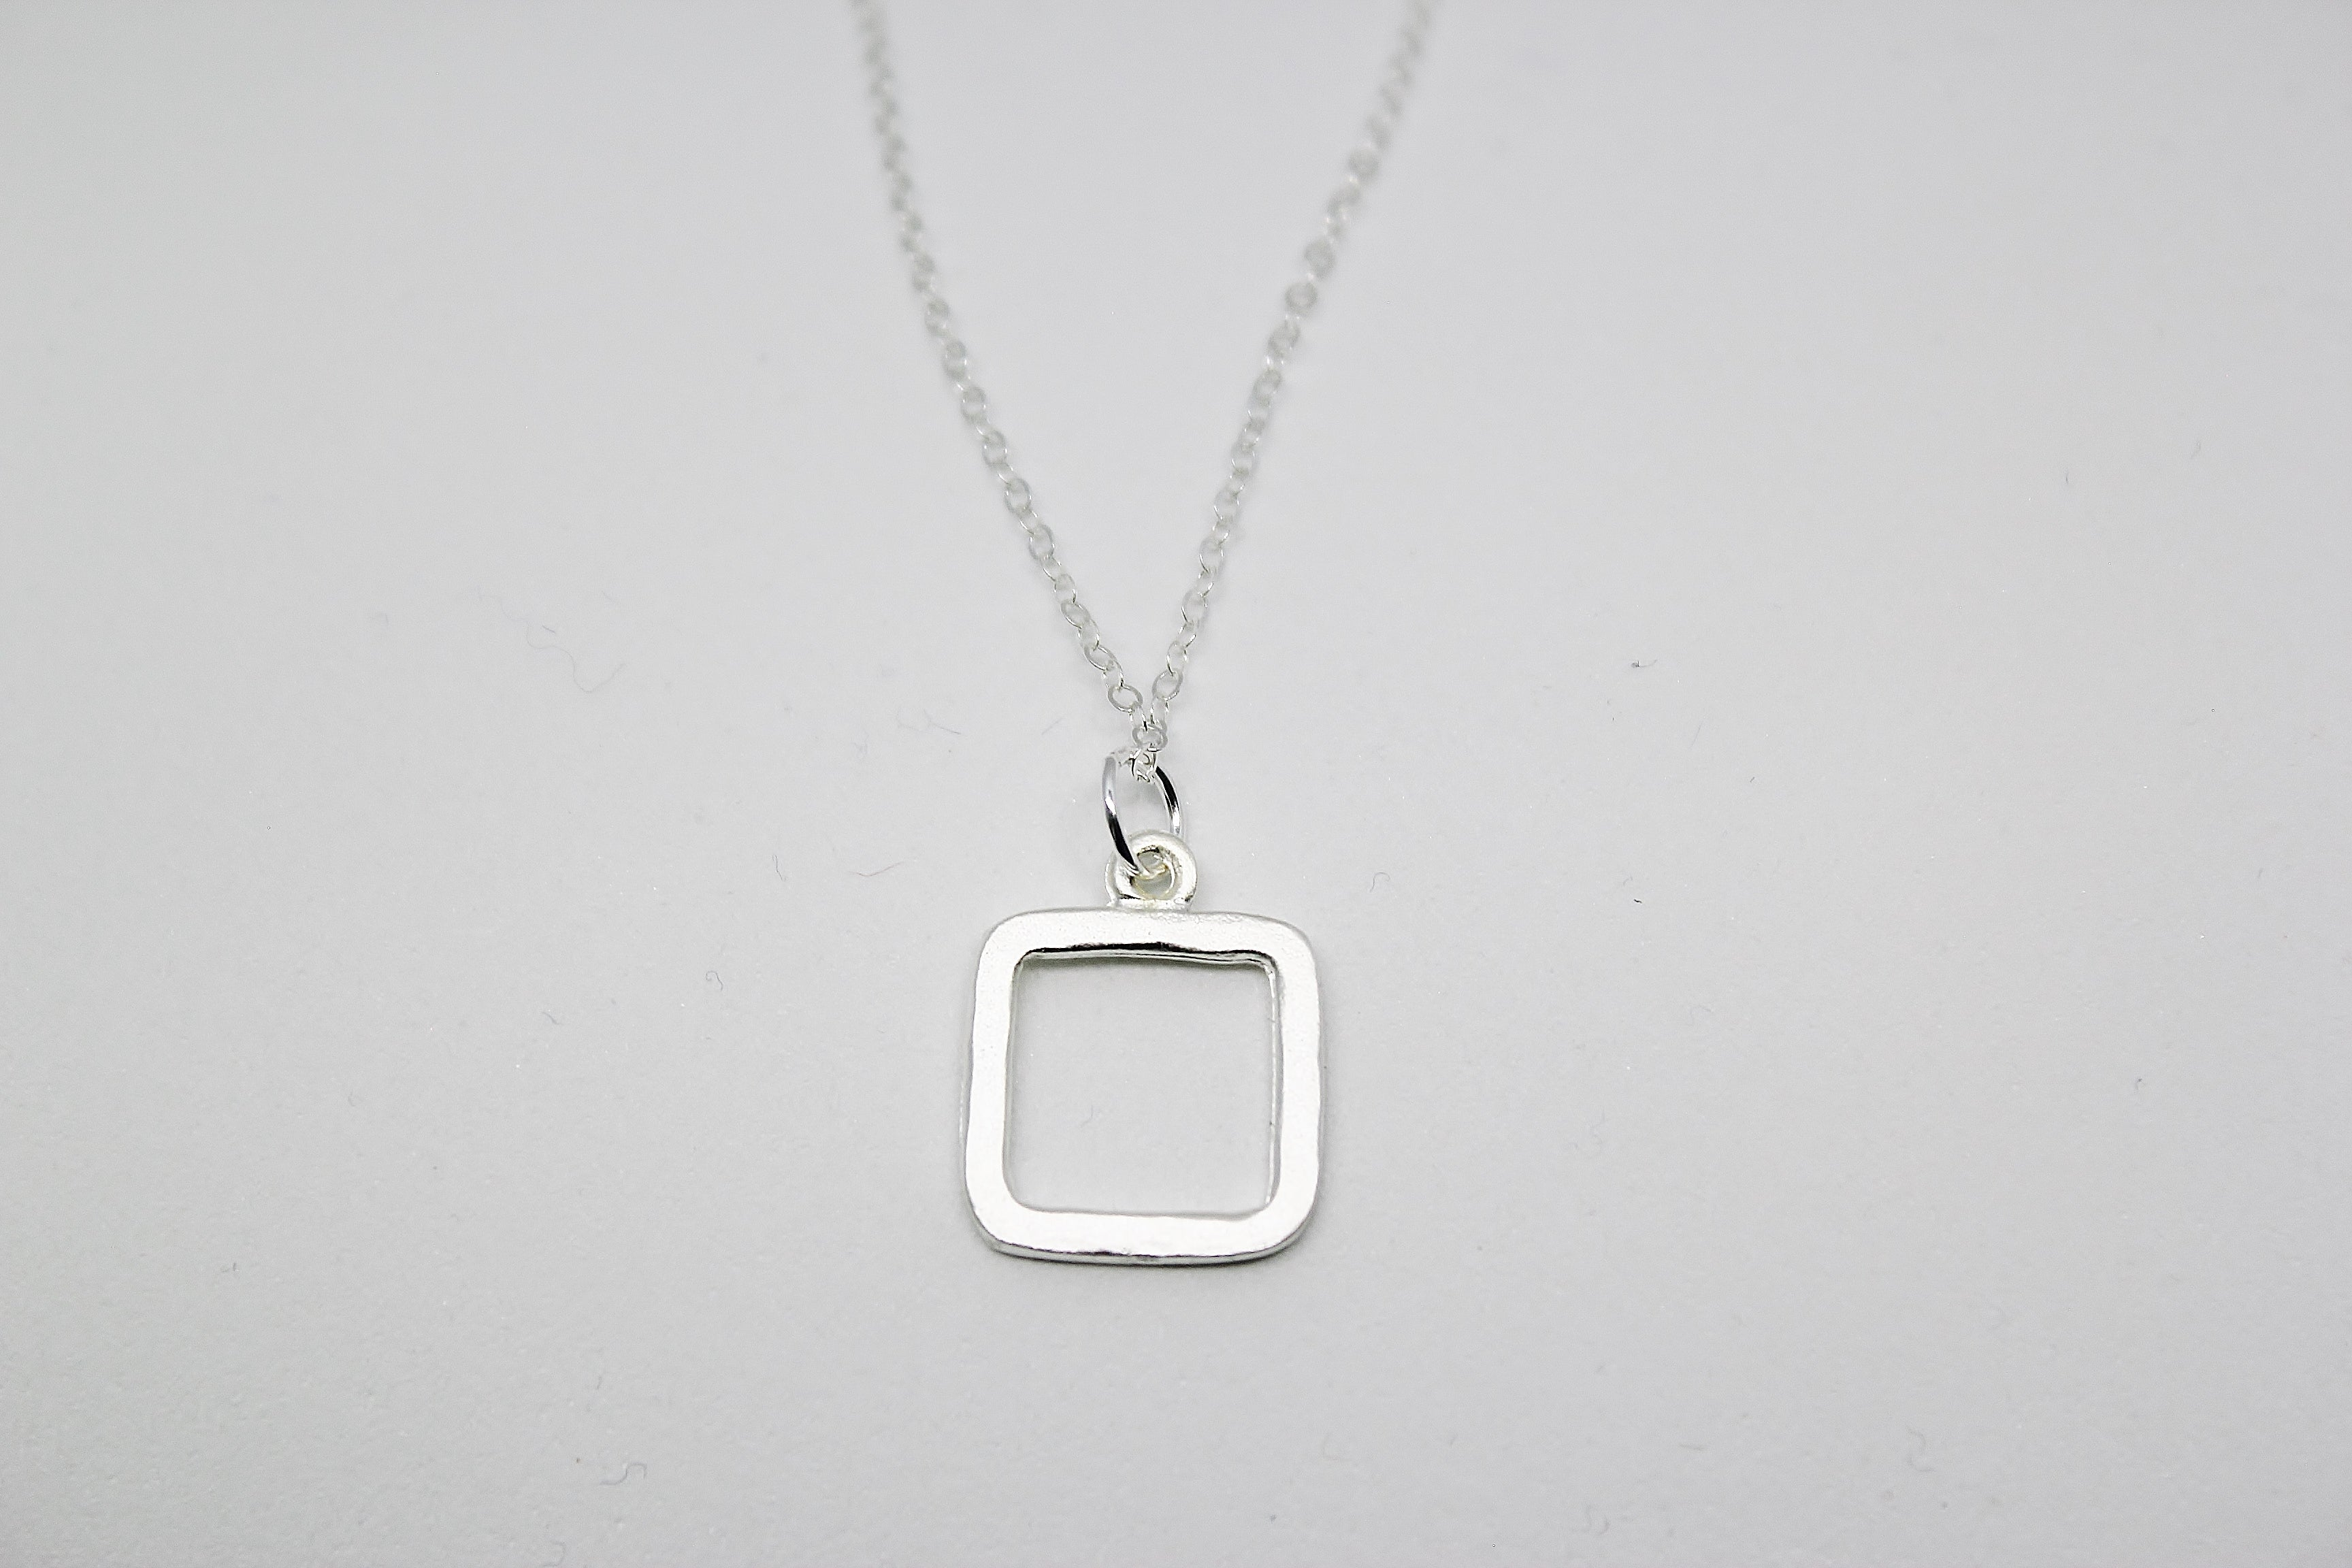 SILVER SMALL SQUARE PENDANT